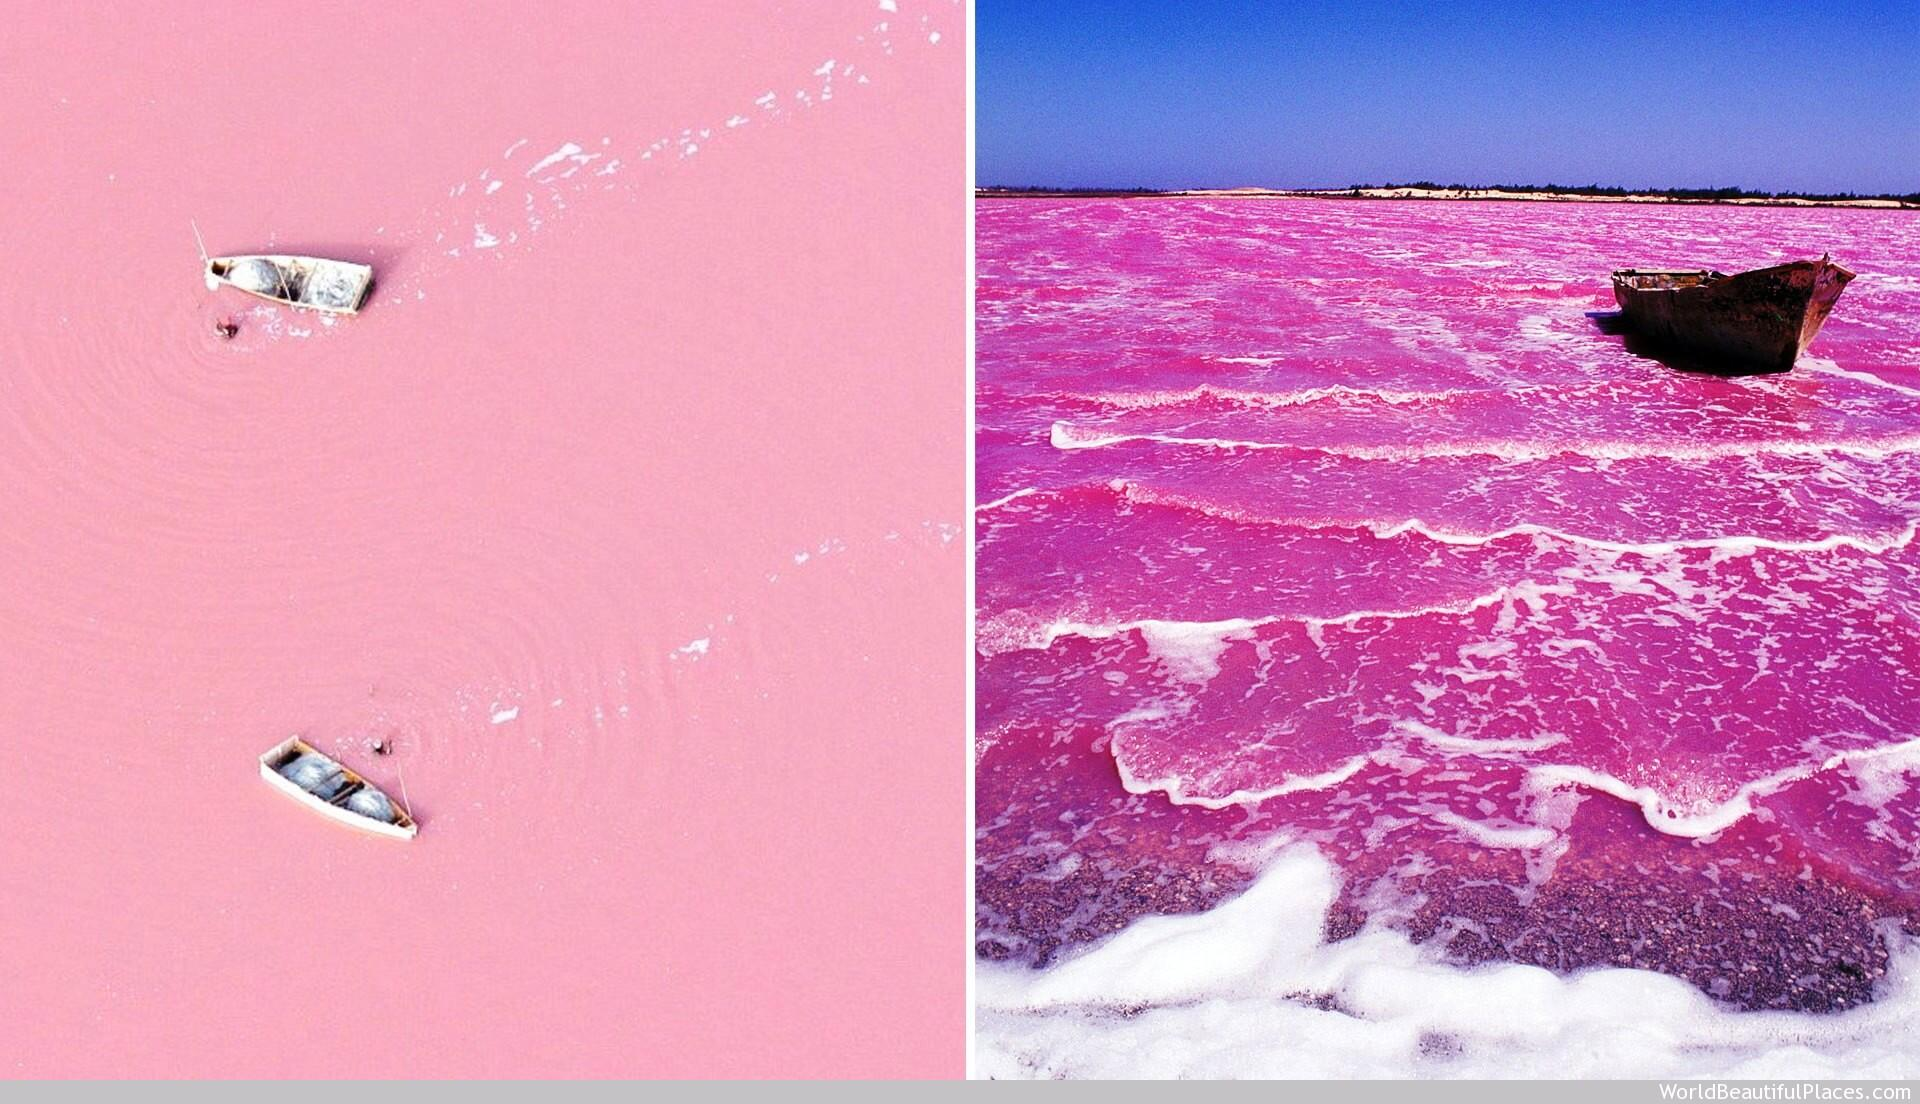 A natural pink colored lake named 'Lac Rose' actually exists and its located in Senegal, West Africa. http://t.co/rVhQrjFNFH